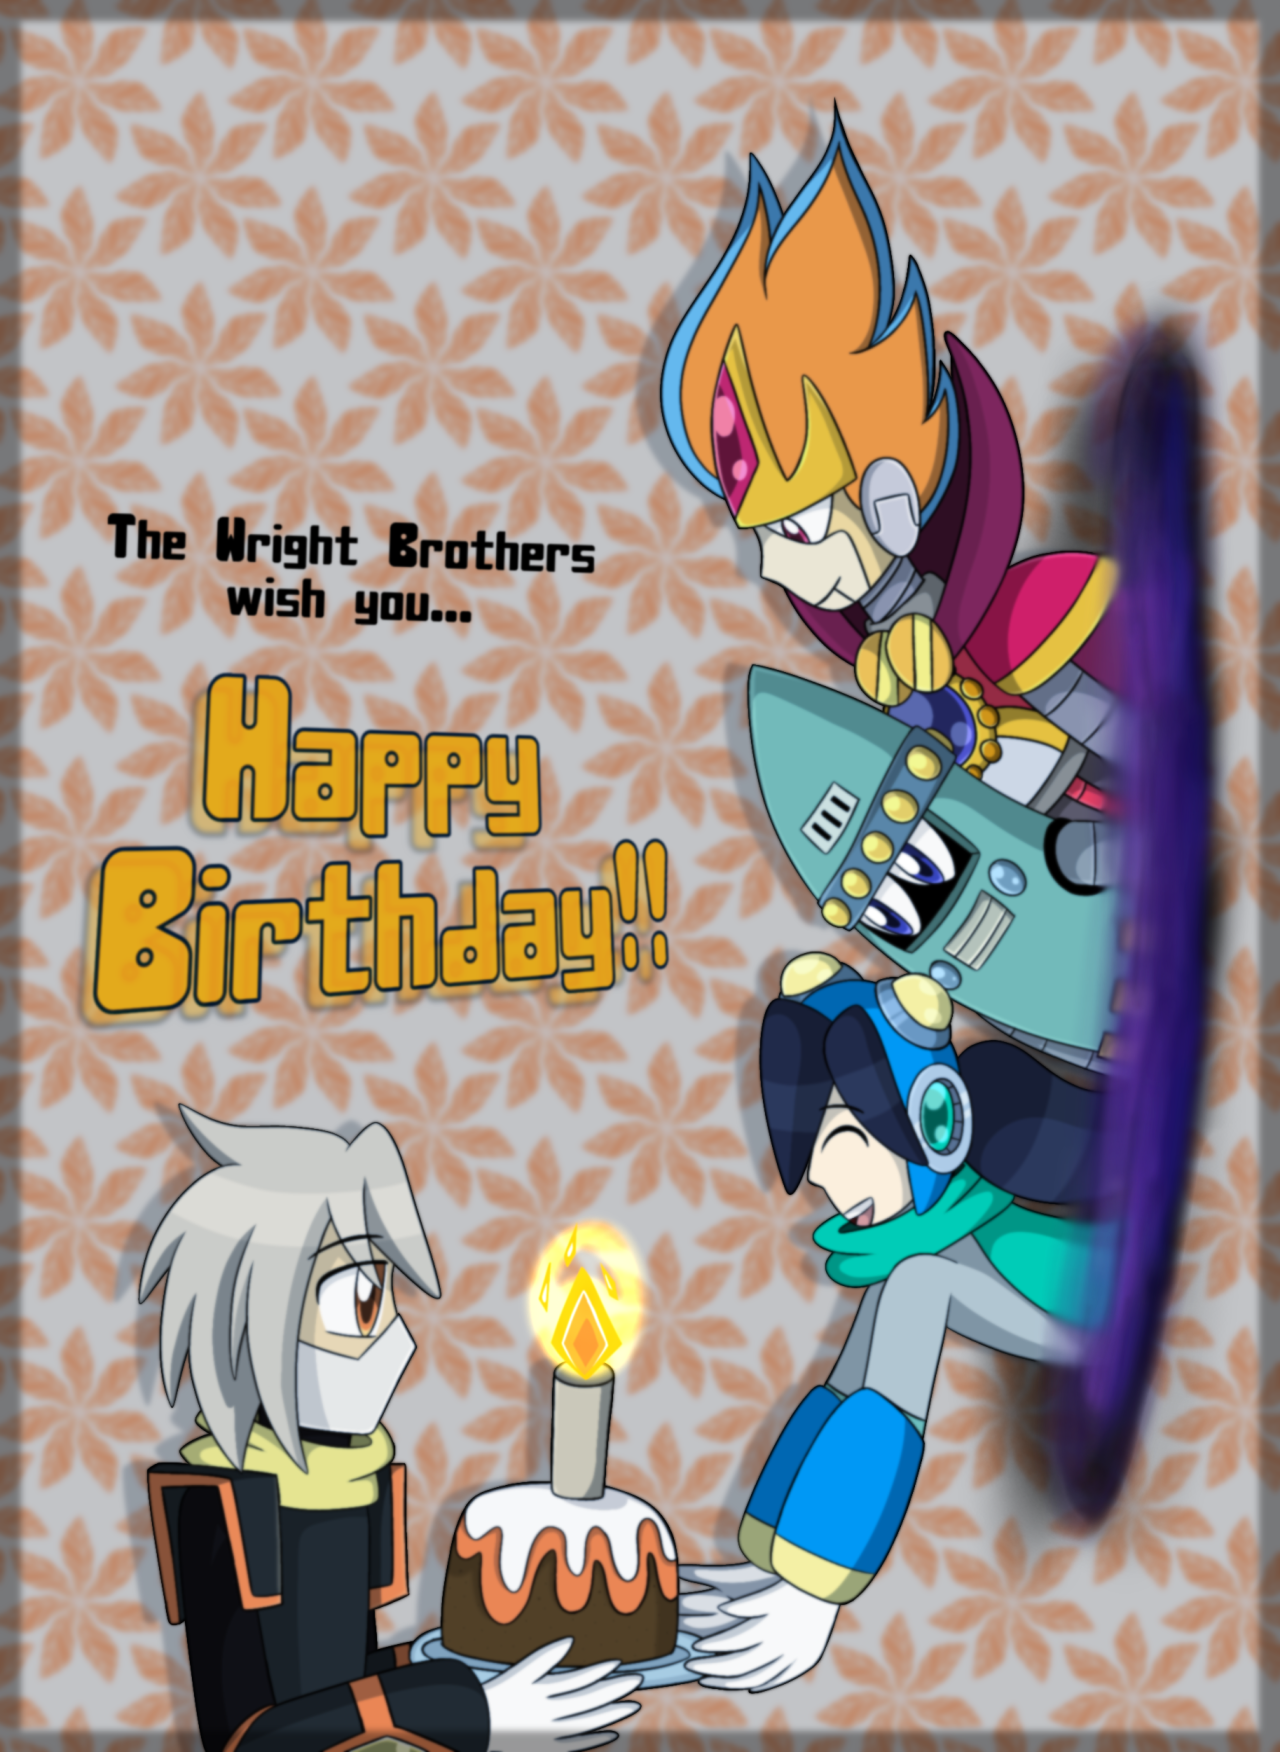 "Happy Birthday from another Dimension! ""The Wright Brothers wishes you a Happy Birthday, Aiden!"" For @flowersofstarlight​ ***It's curious that I've met you thanks to @purplesweetwarmheart, my friend of DeviantArt since 2019. I know…  The Wright Numbers are an Special Line who had to go through space and time to visit Aiden to wish him a ""Happy Birthday!"".  For an strange reason, they discovered the day of Aiden's birthday and they cooked a delicious chocolate cake with orange cream XD  *** *A mysterious purple hole appears without reason* The Wright Brothers: Happy Birthday, Aiden!! Windy: *holds a chocolate cake with orange cream* My brothers and I made this chocolate cake for you! RocketMan: *smiles* I hope you're having a good time! Ignis Frost: *laughs* This is a gift for our part! Thank you for let us met your friends!  ***Aiden belongs to @flowersofstarlight***PD: I WAS WAITING 1 WEEK TO FINALLY SUBMIT THIS THING! XD I HAD BUSY DAYS THAT I'M AFRAID TO DON'T FINISH IT AT TIME :'v #megaman#megaman oc#fan characters #robot masters oc #aiden#flowersofstarlight #megaman: heroes of robots  #the gear heroes #ignis frost#windy#rocket man#another dimension#dimension#alternative universe#rockman#robot masters#birthday#birthday boy"